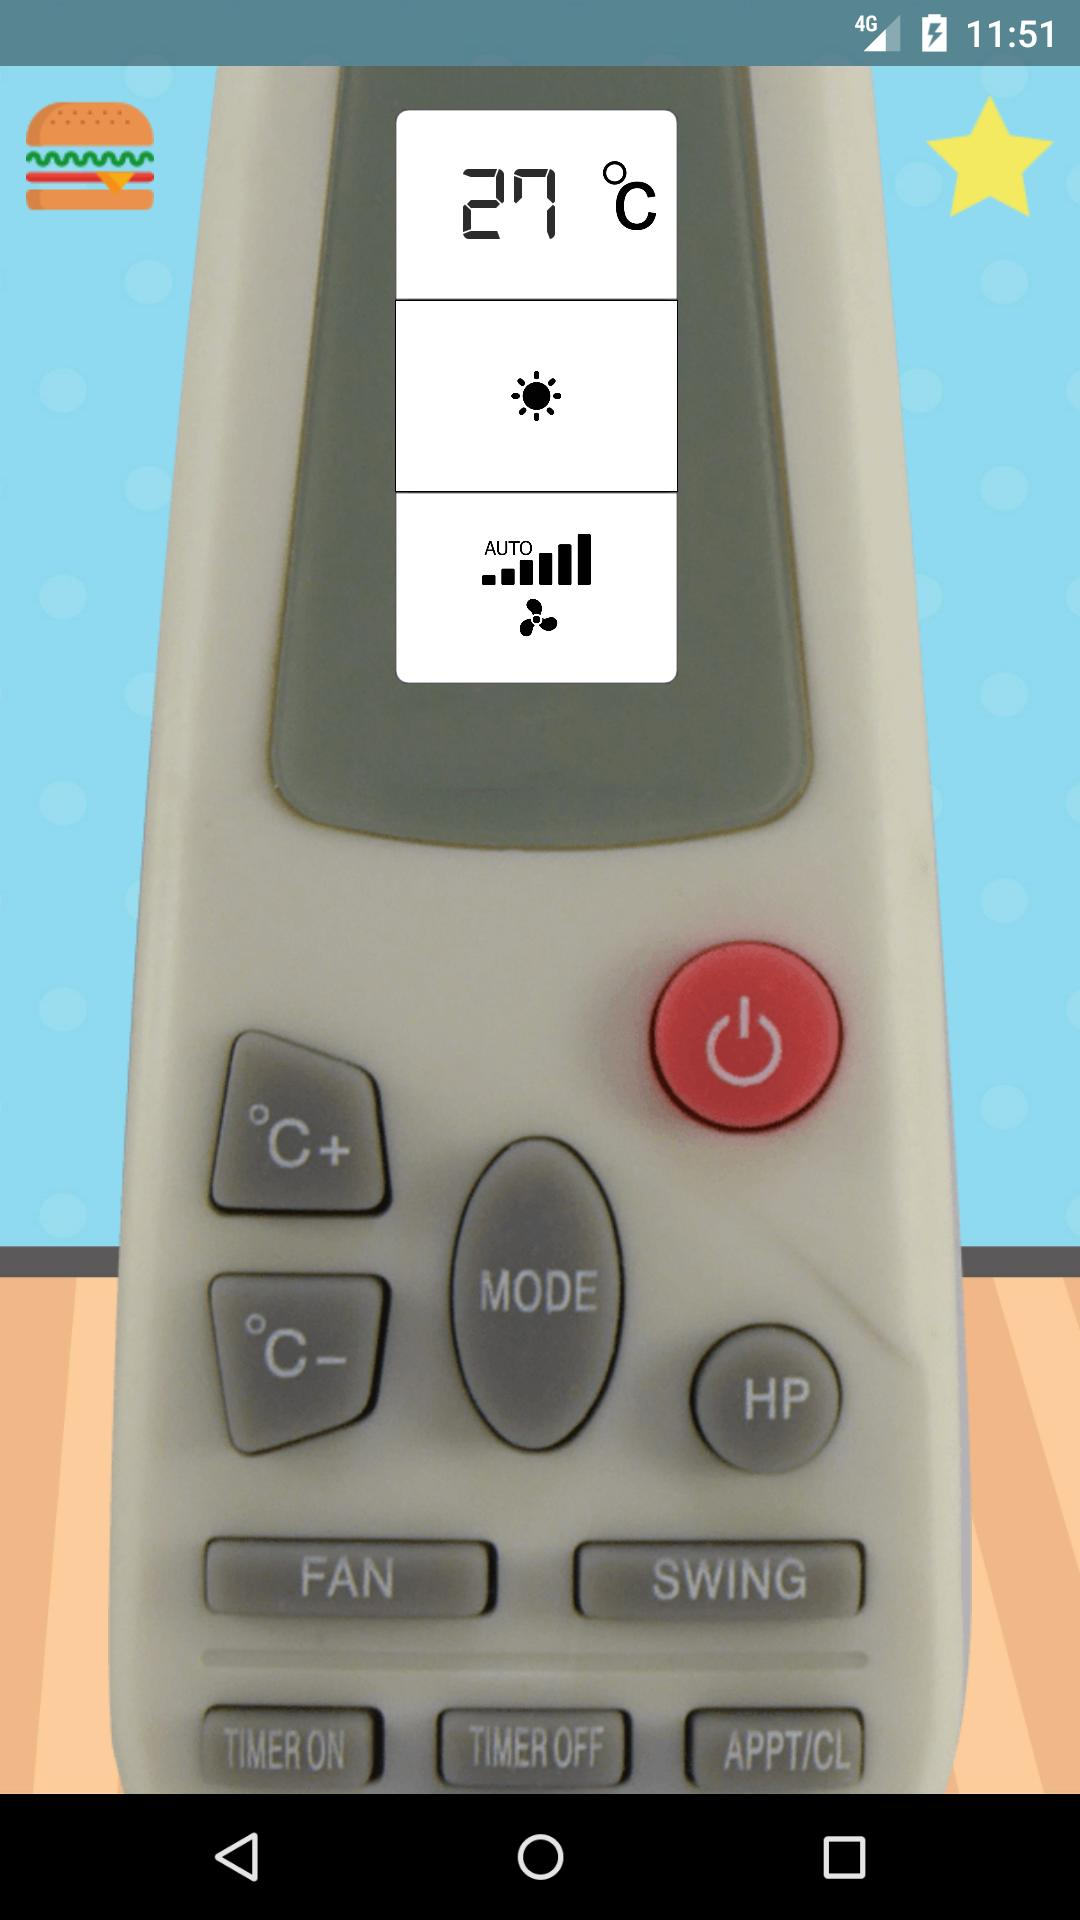 Remote Control For Hisense Air Conditioner for Android - APK